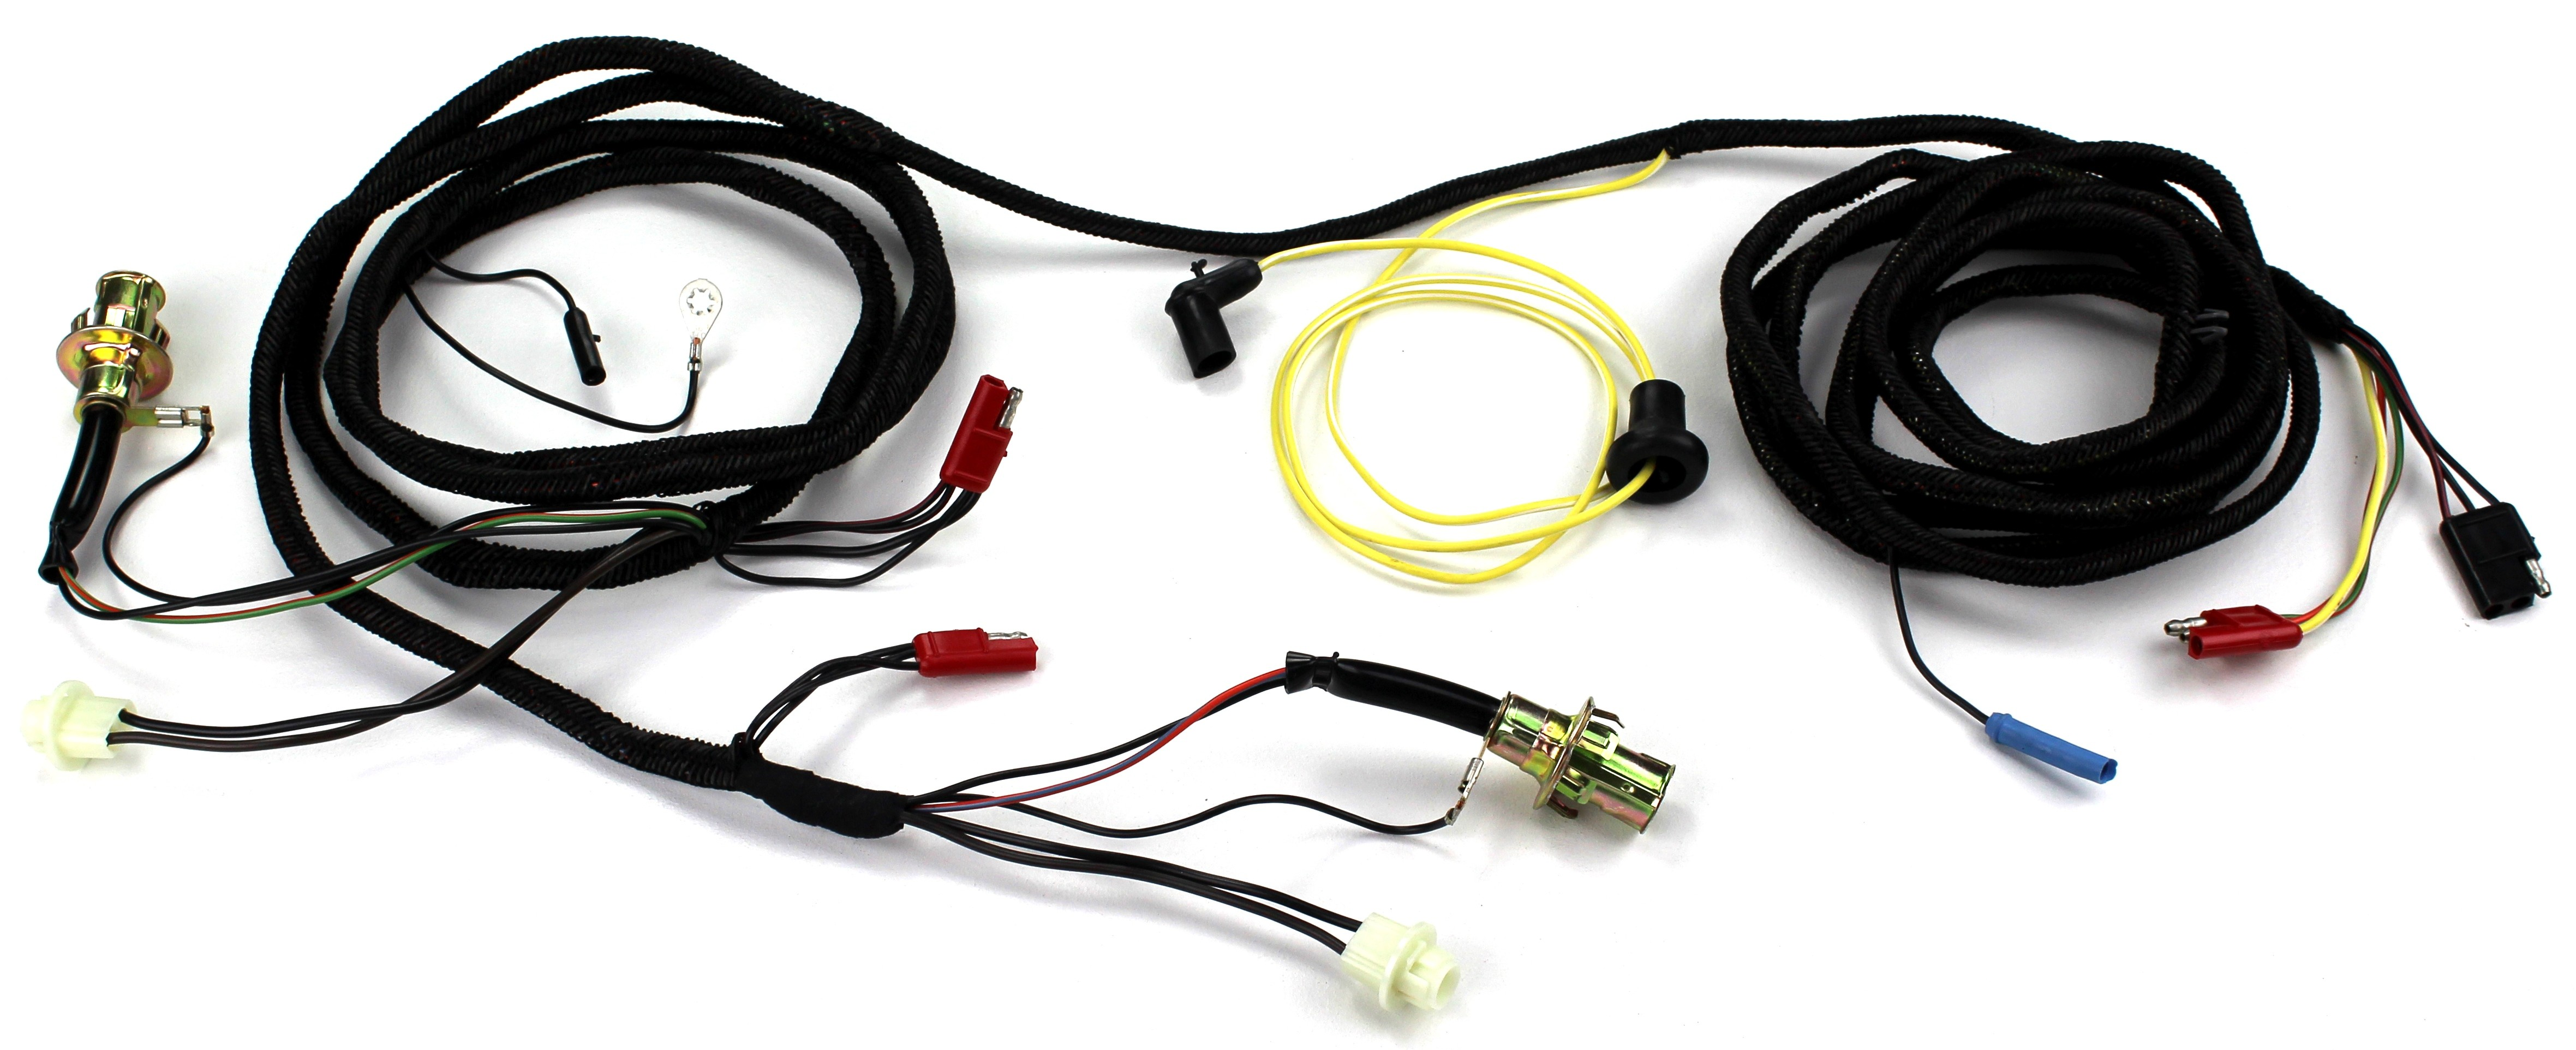 1969 mustang wiring harness tail light wiring harness with sockets w o safety convenience  tail light wiring harness with sockets